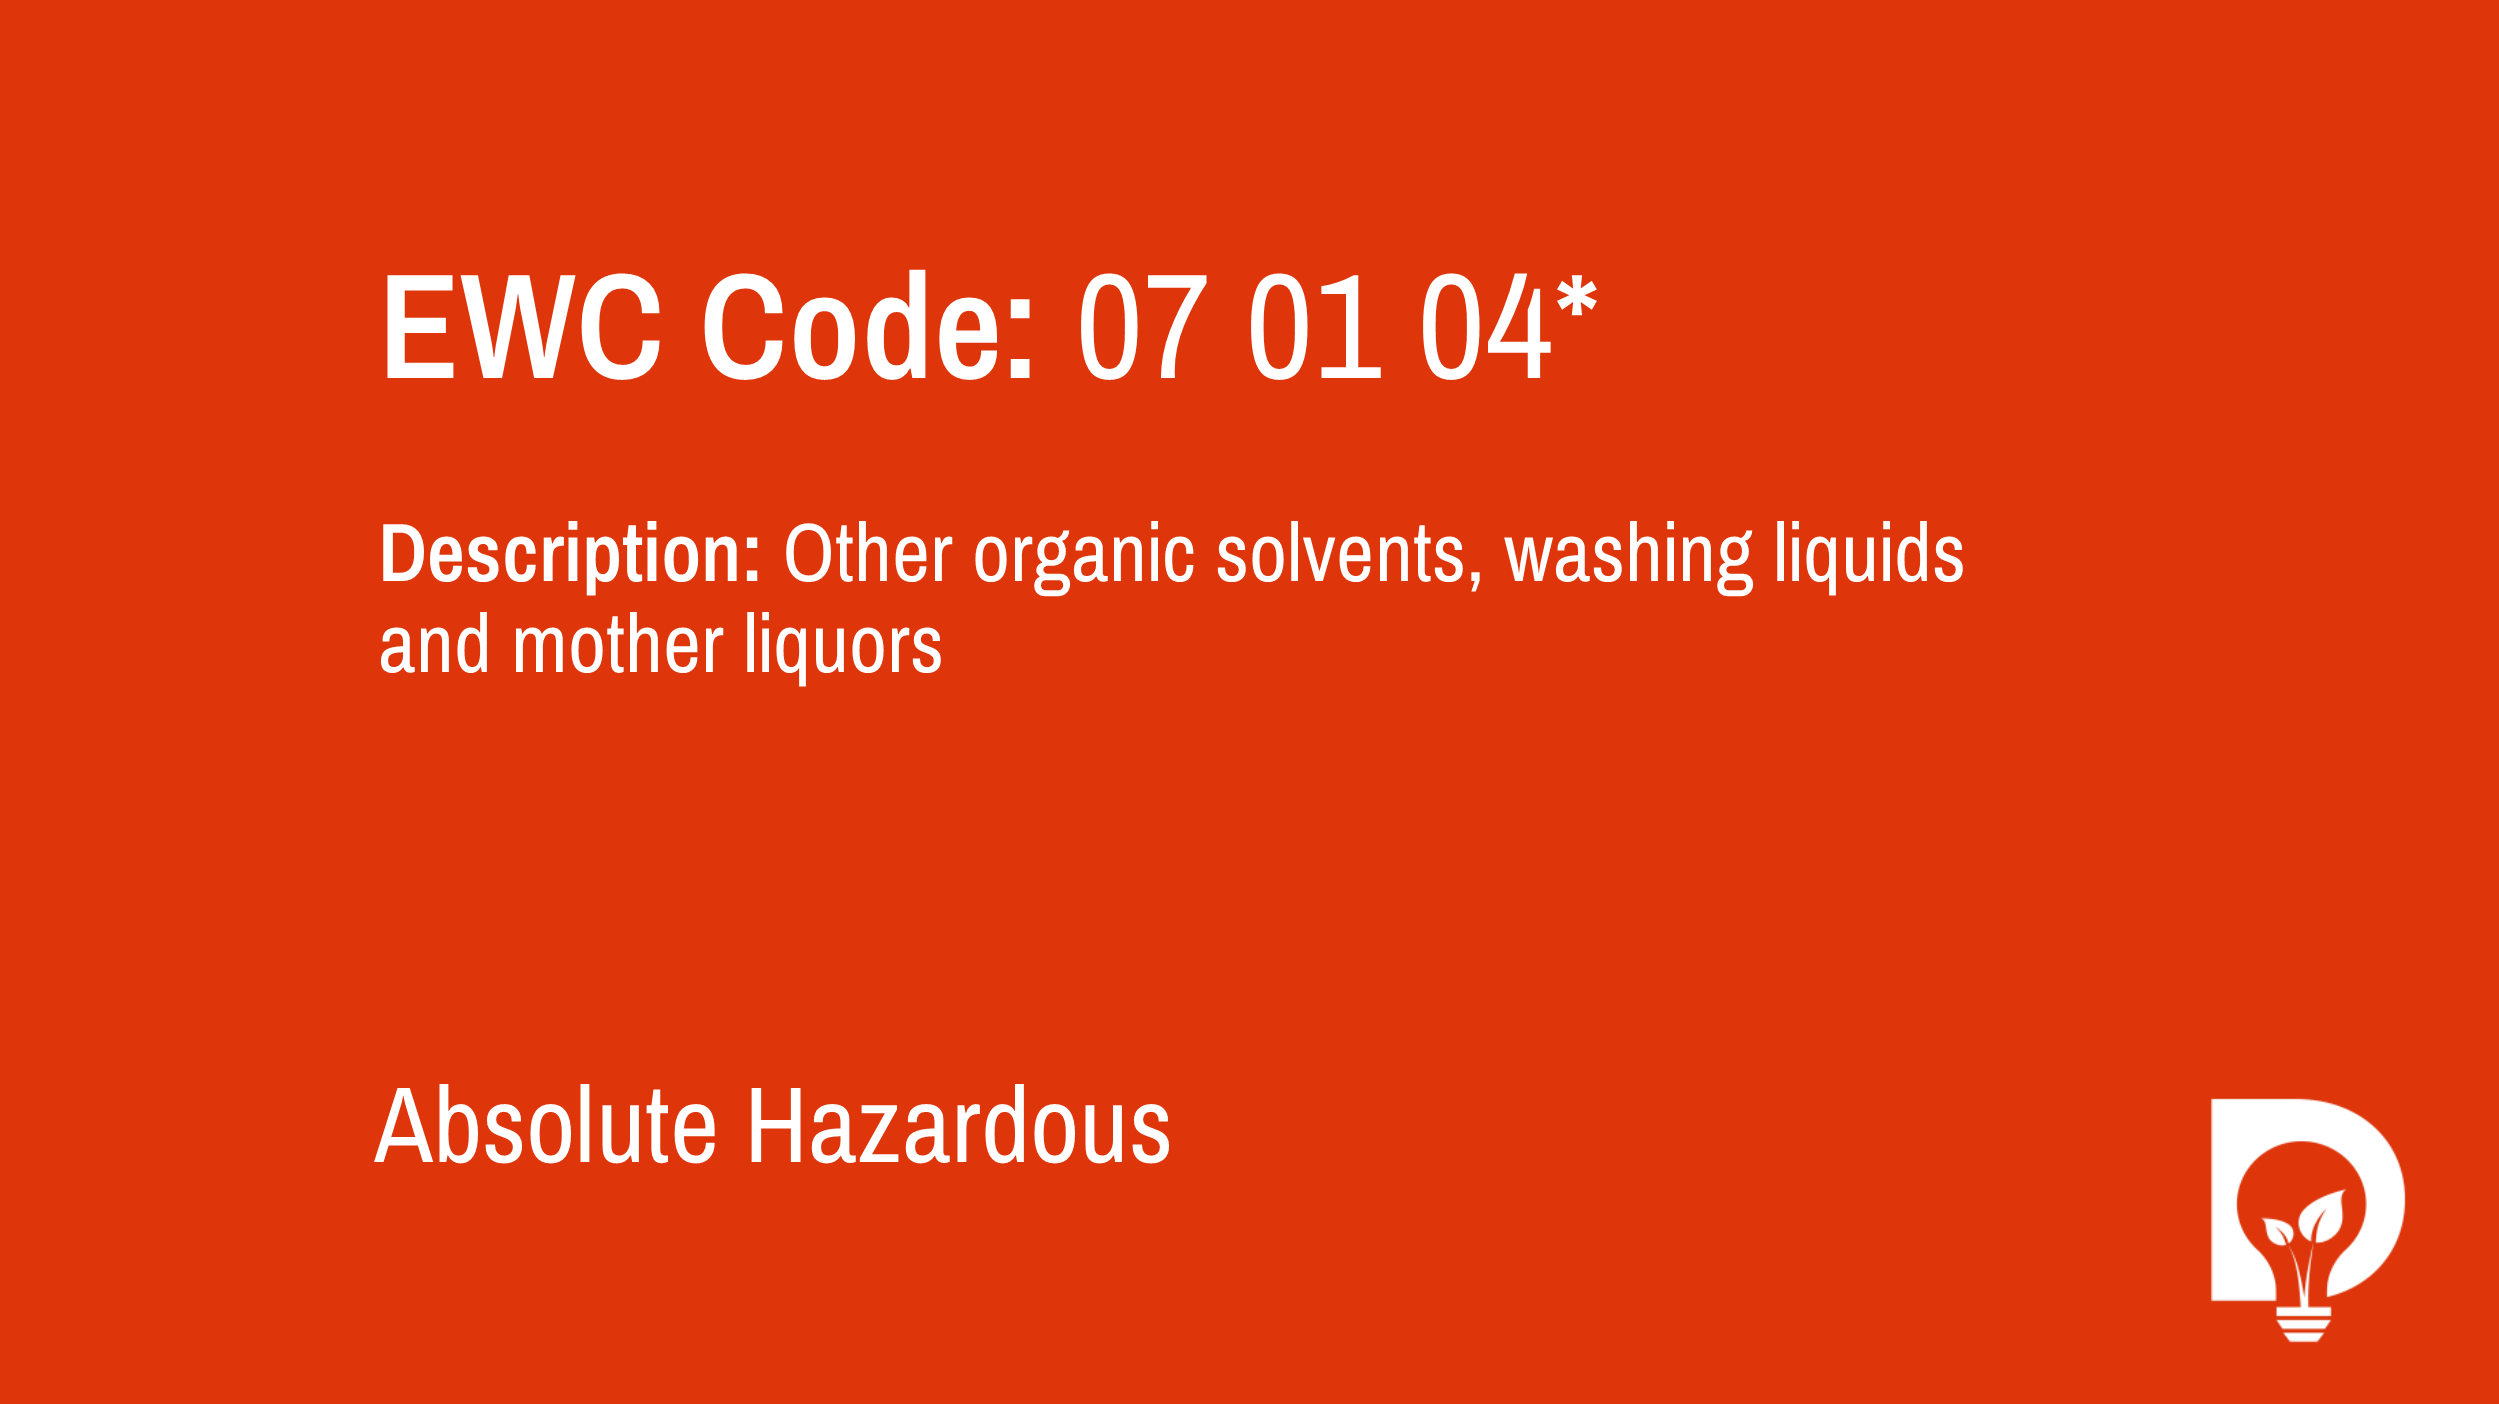 EWC Code: 07 01 04* - other organic solvents, washing liquids and mother liquors. Type: Absolute Hazardous. Image by Dsposal